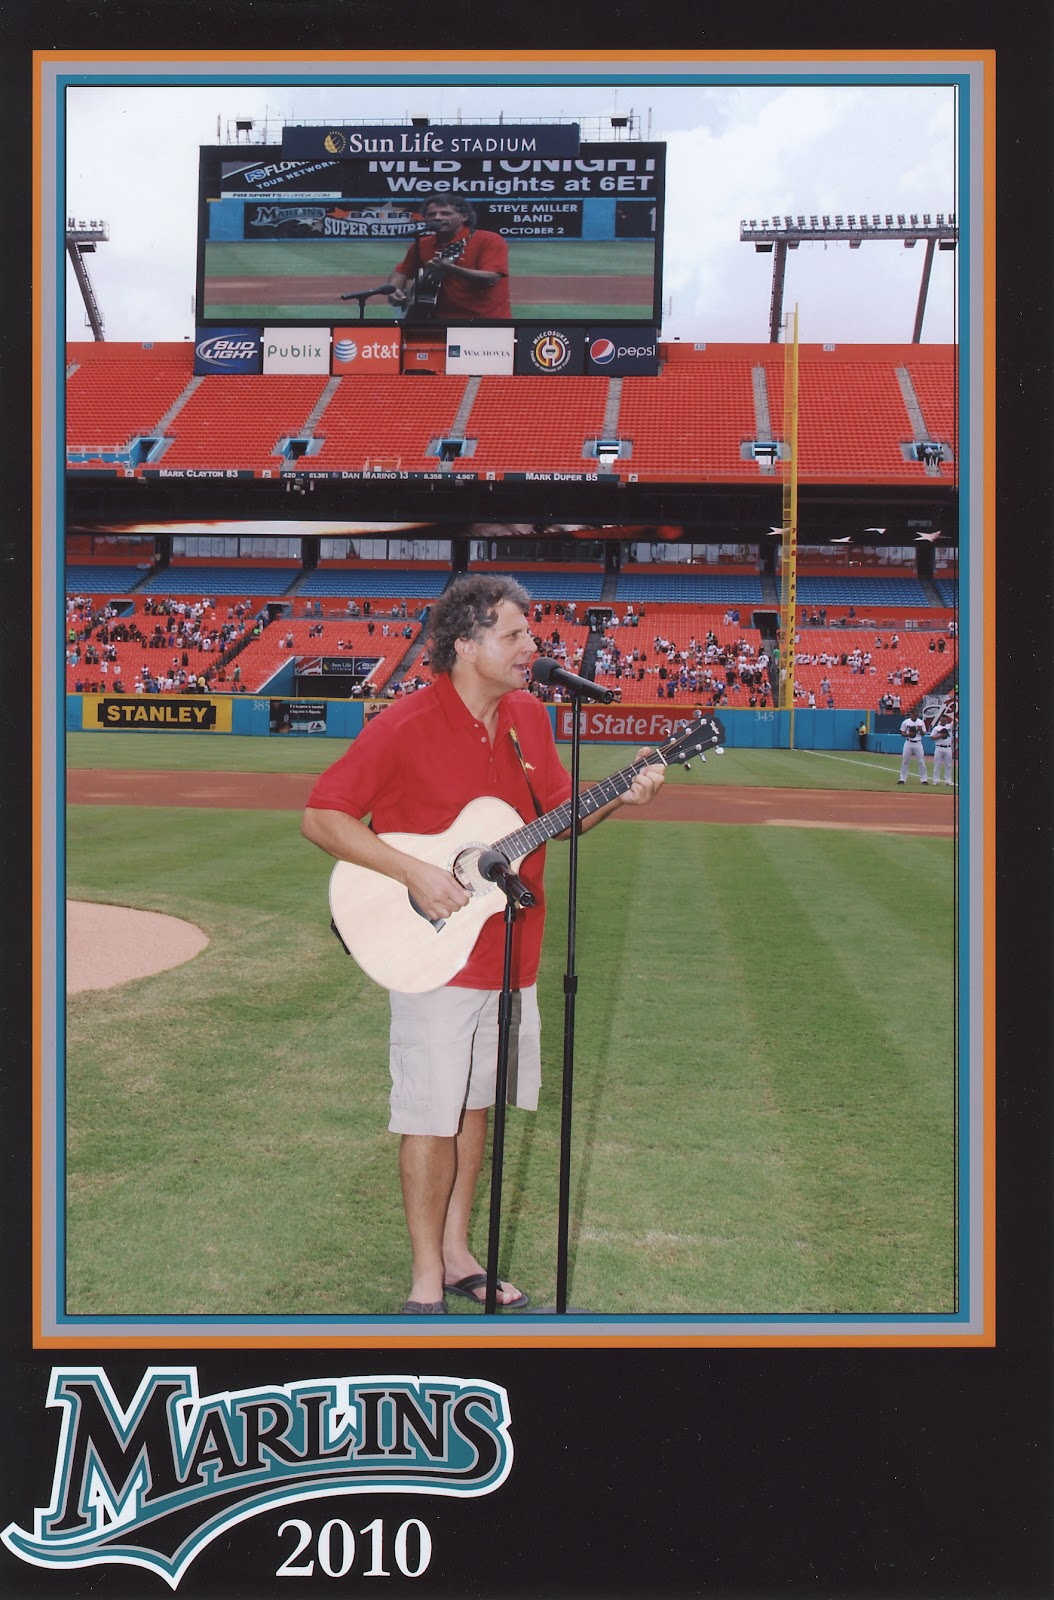 Singing the Star Spangled Banner before a Miami Marlins game